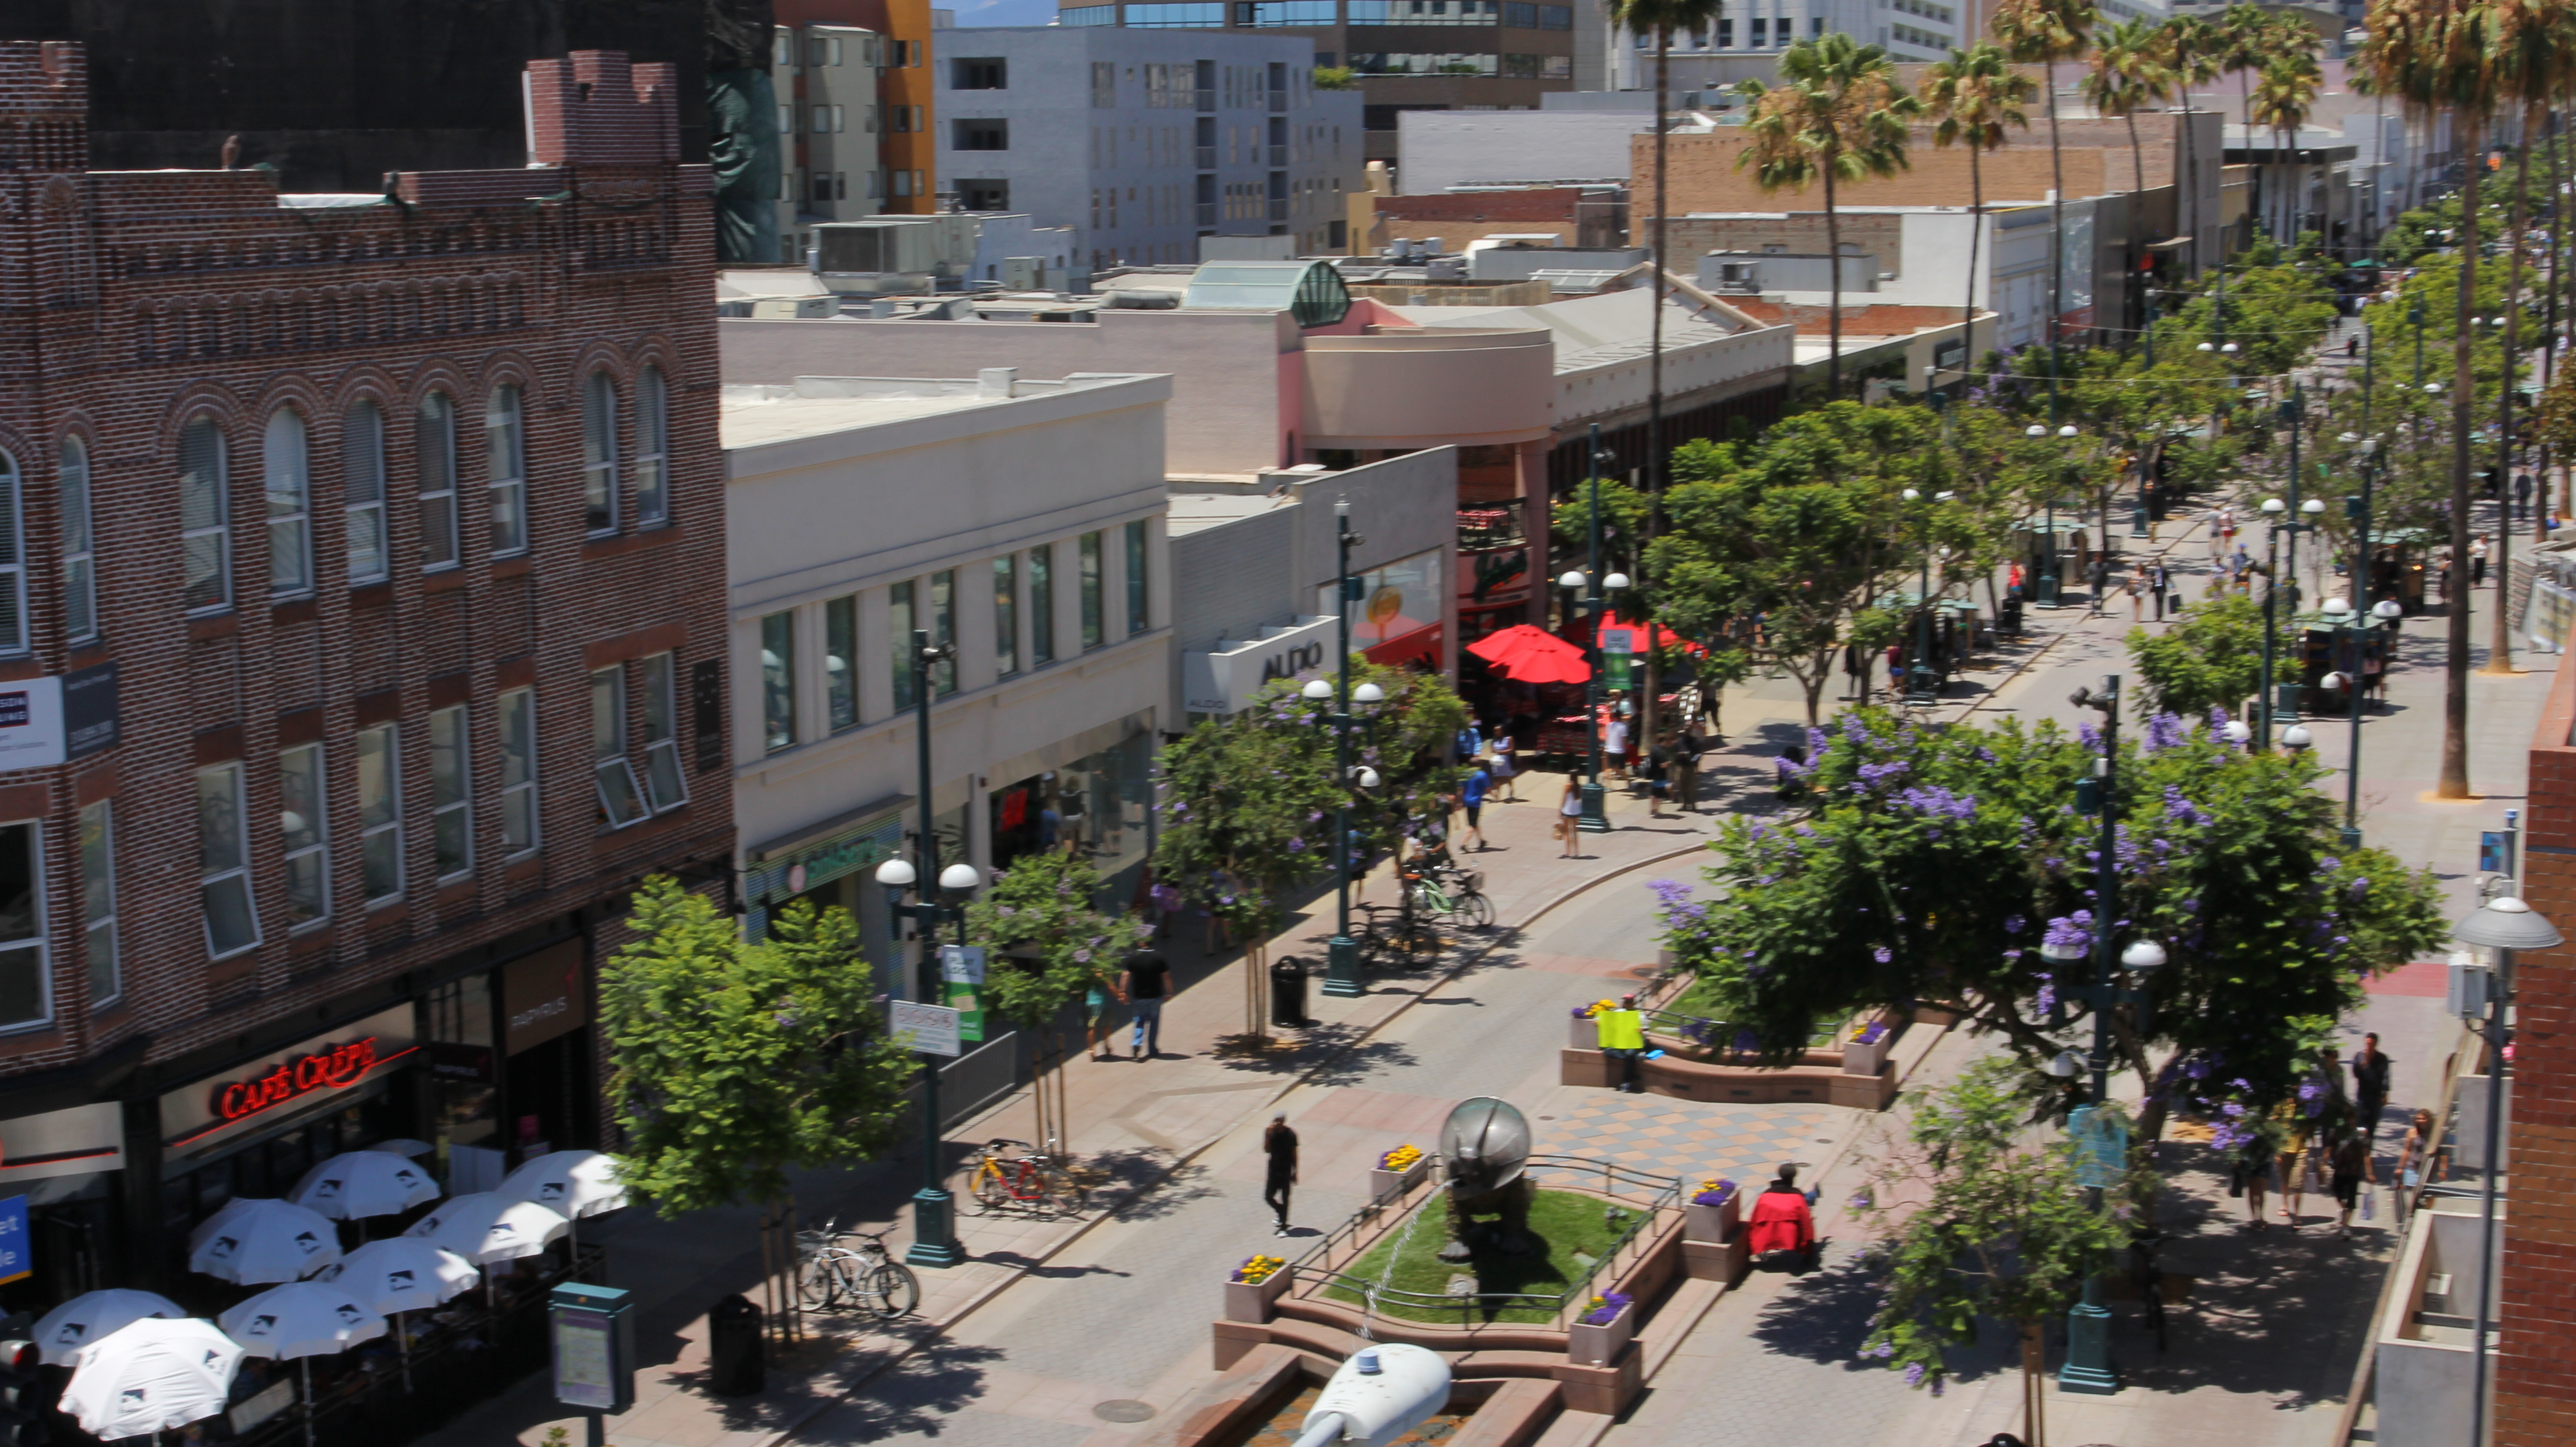 In the heart of downtown Santa Monica, just a few blocks from the beach, is Third Street Promenade—a premiere shopping and eating destination on the west side of Los Angeles. Simply referred to as